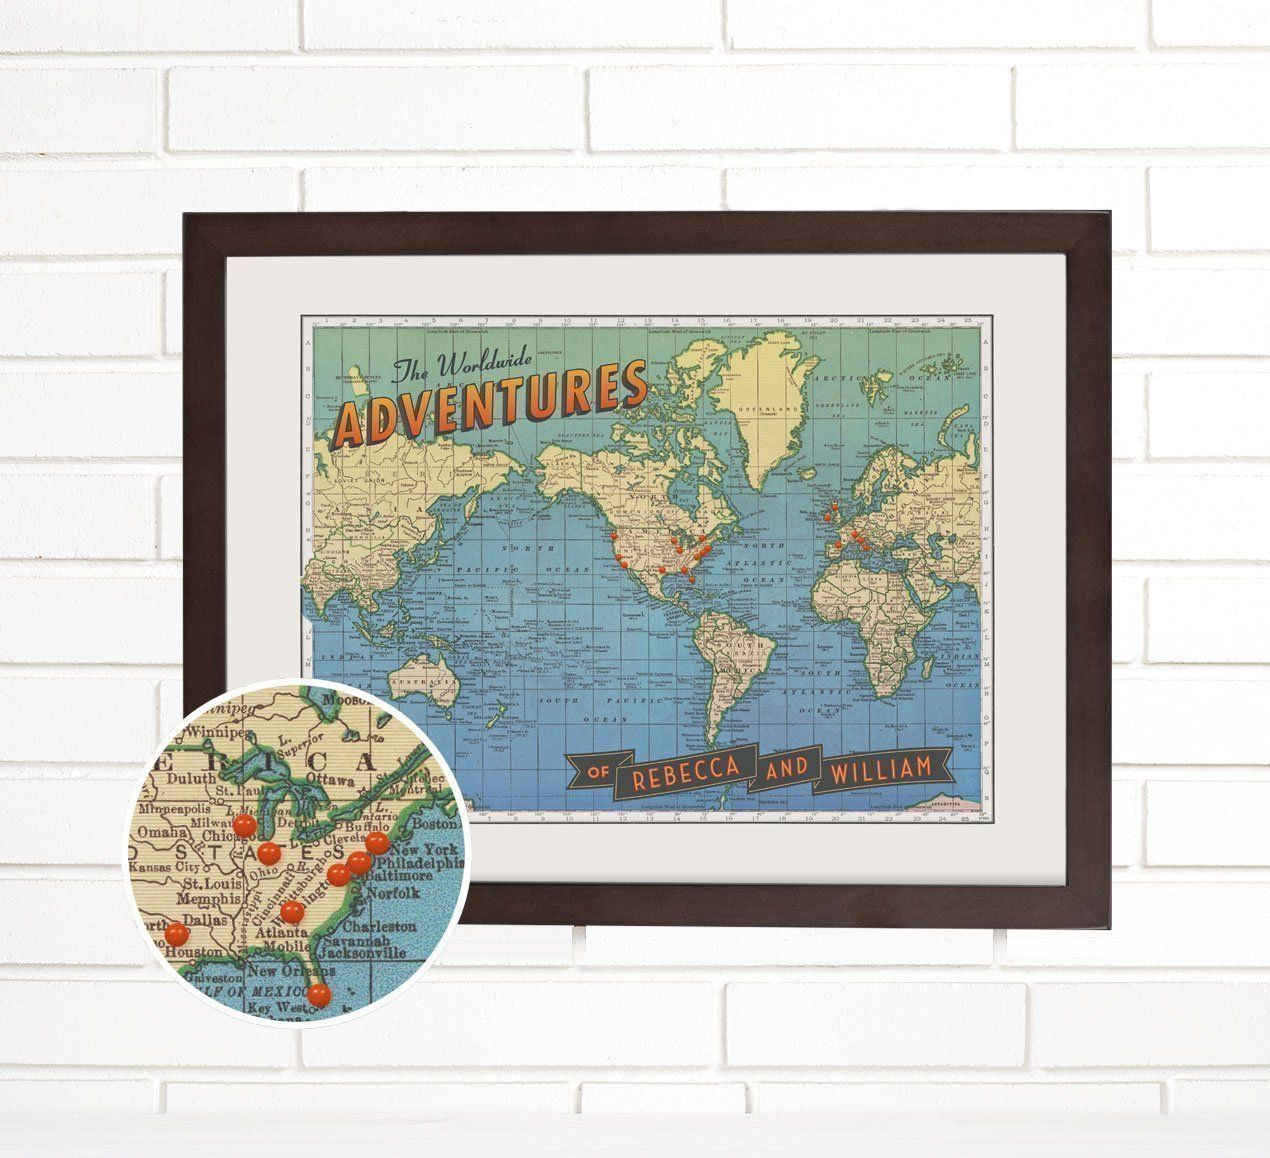 Amazon personalized worldwide adventures travel push pin map amazon personalized worldwide adventures travel push pin map handmade gumiabroncs Gallery